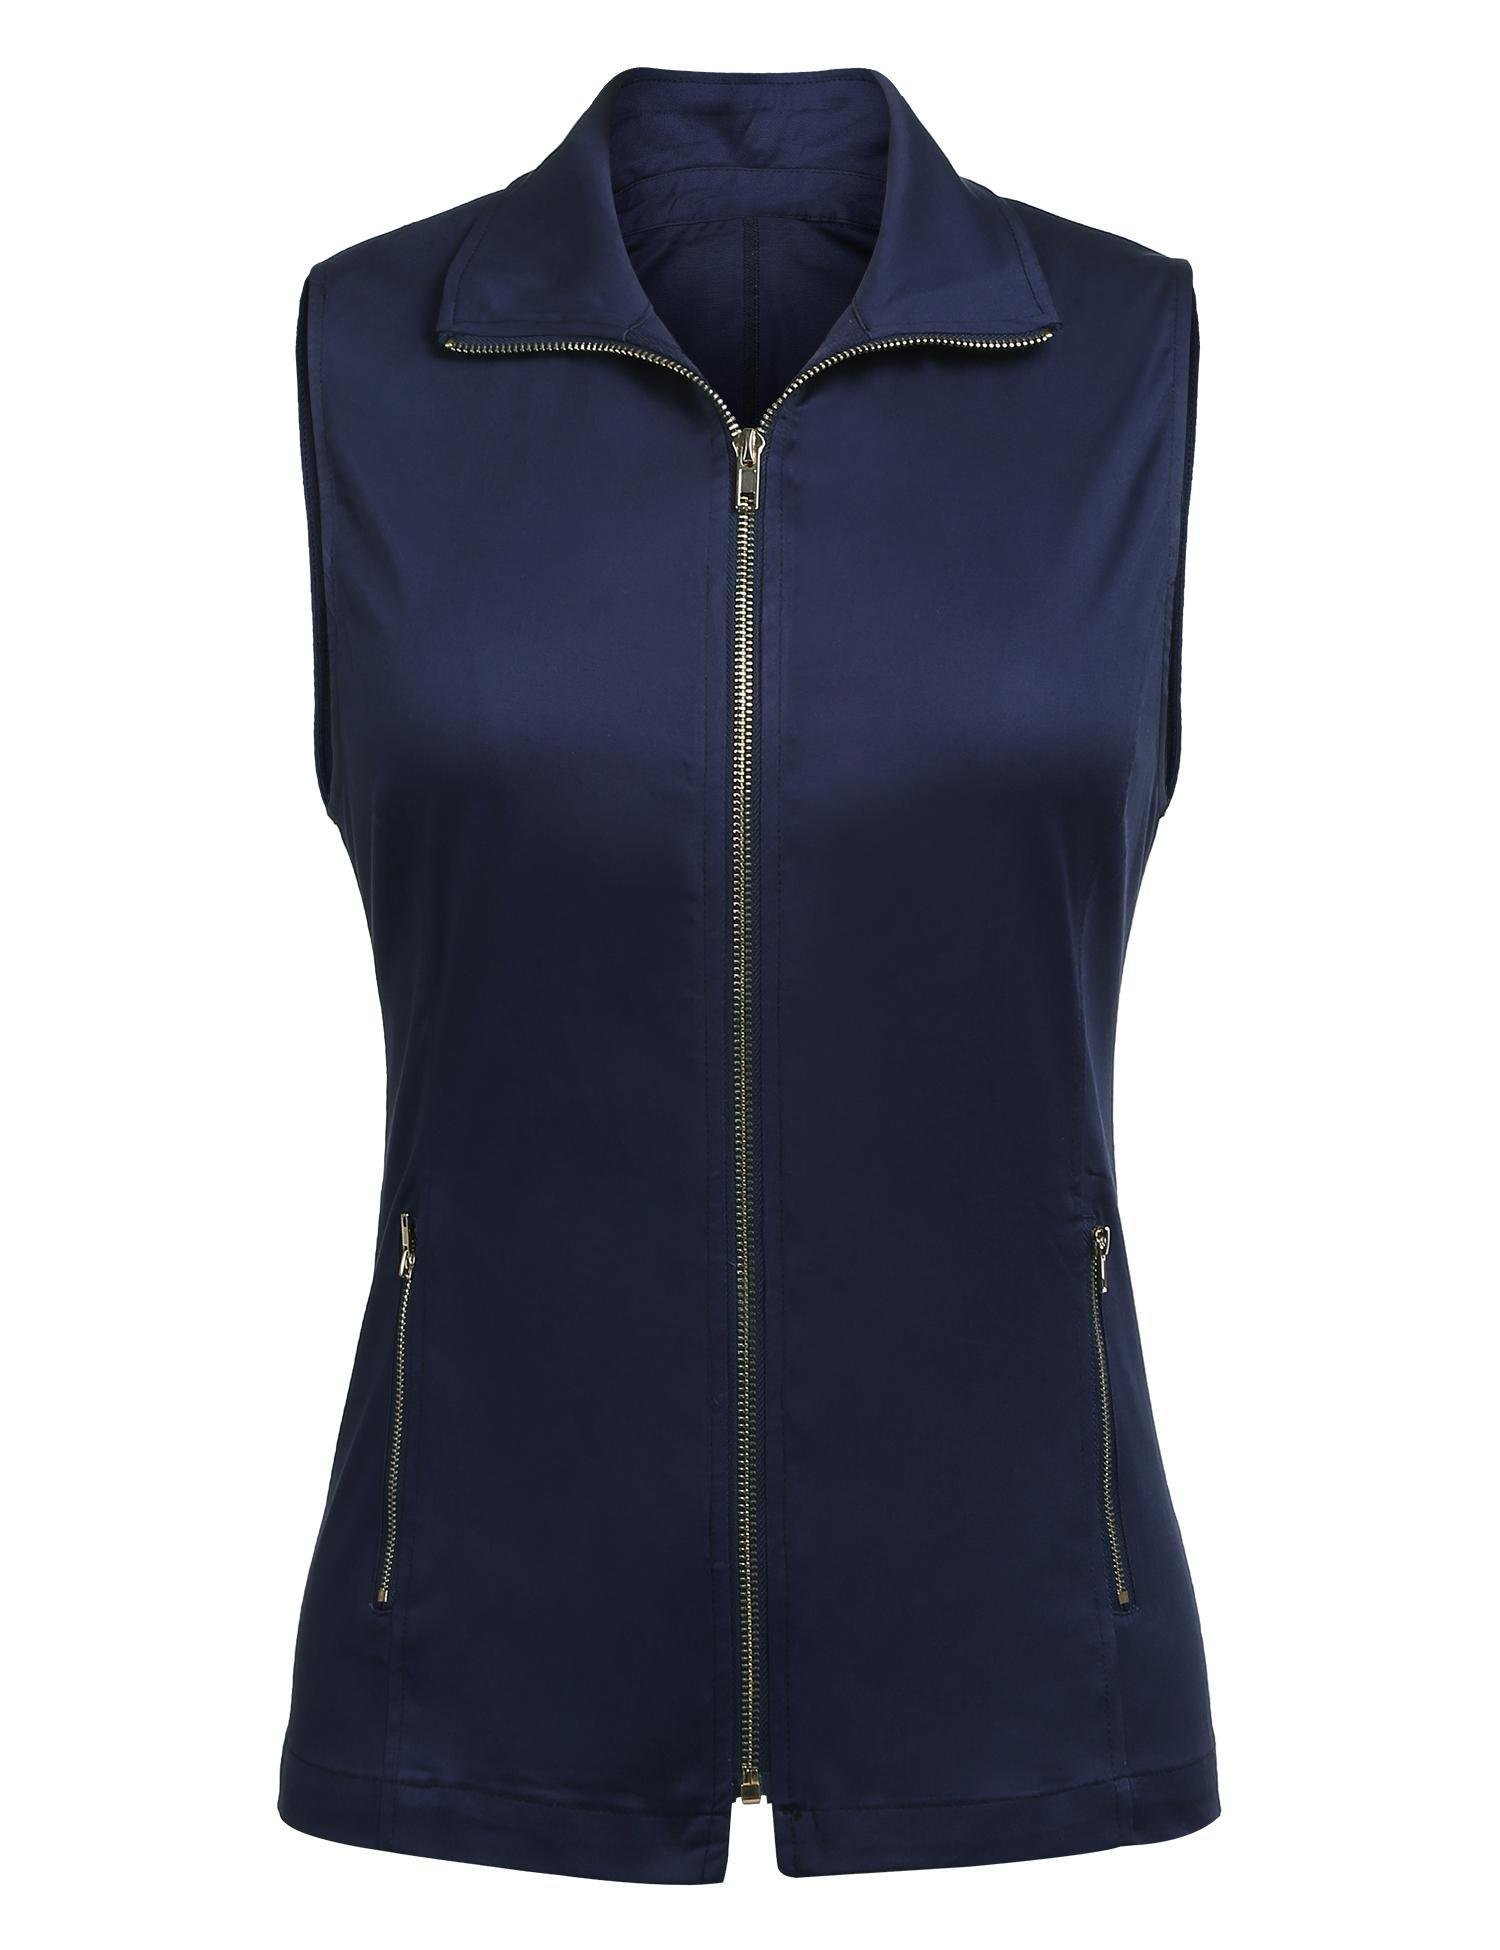 Dealwell Women's Military Vest Casual Lightweight Sleeveless Jacket with Pockets (Navy Blue M) by Dealwell